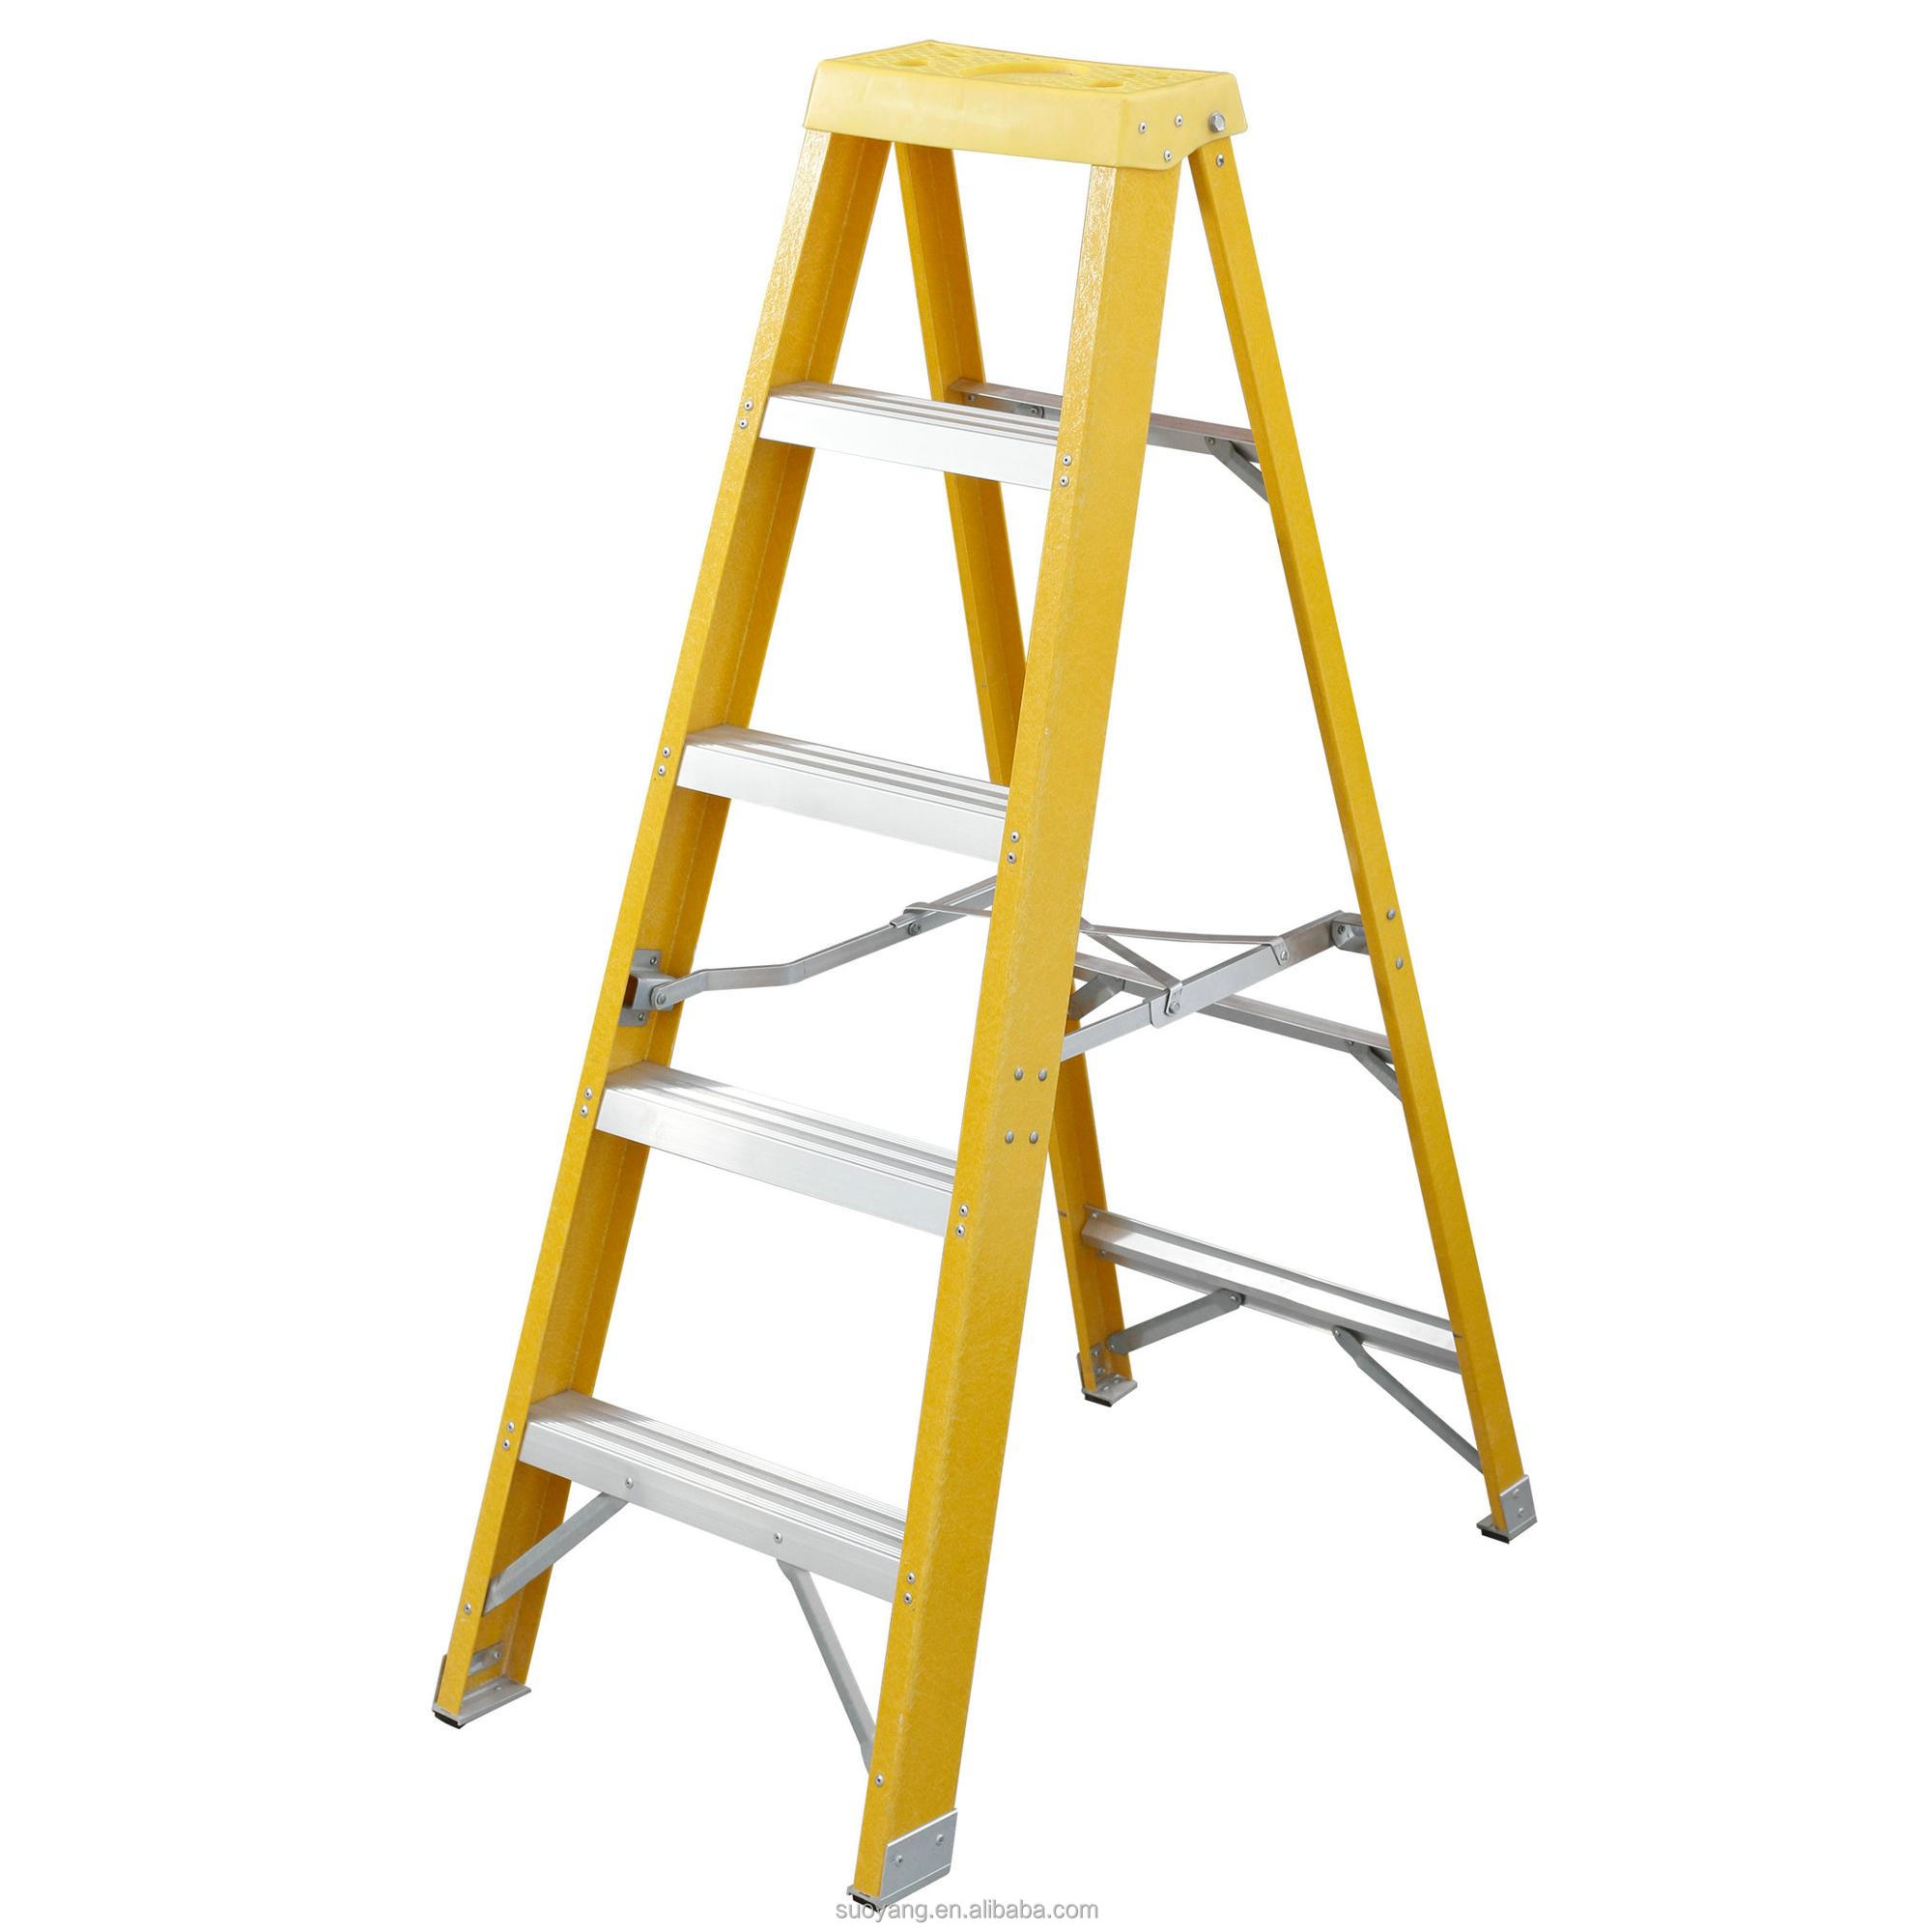 Soyoung Fiberglass Step Ladder Folding Insulation A shape Ladder